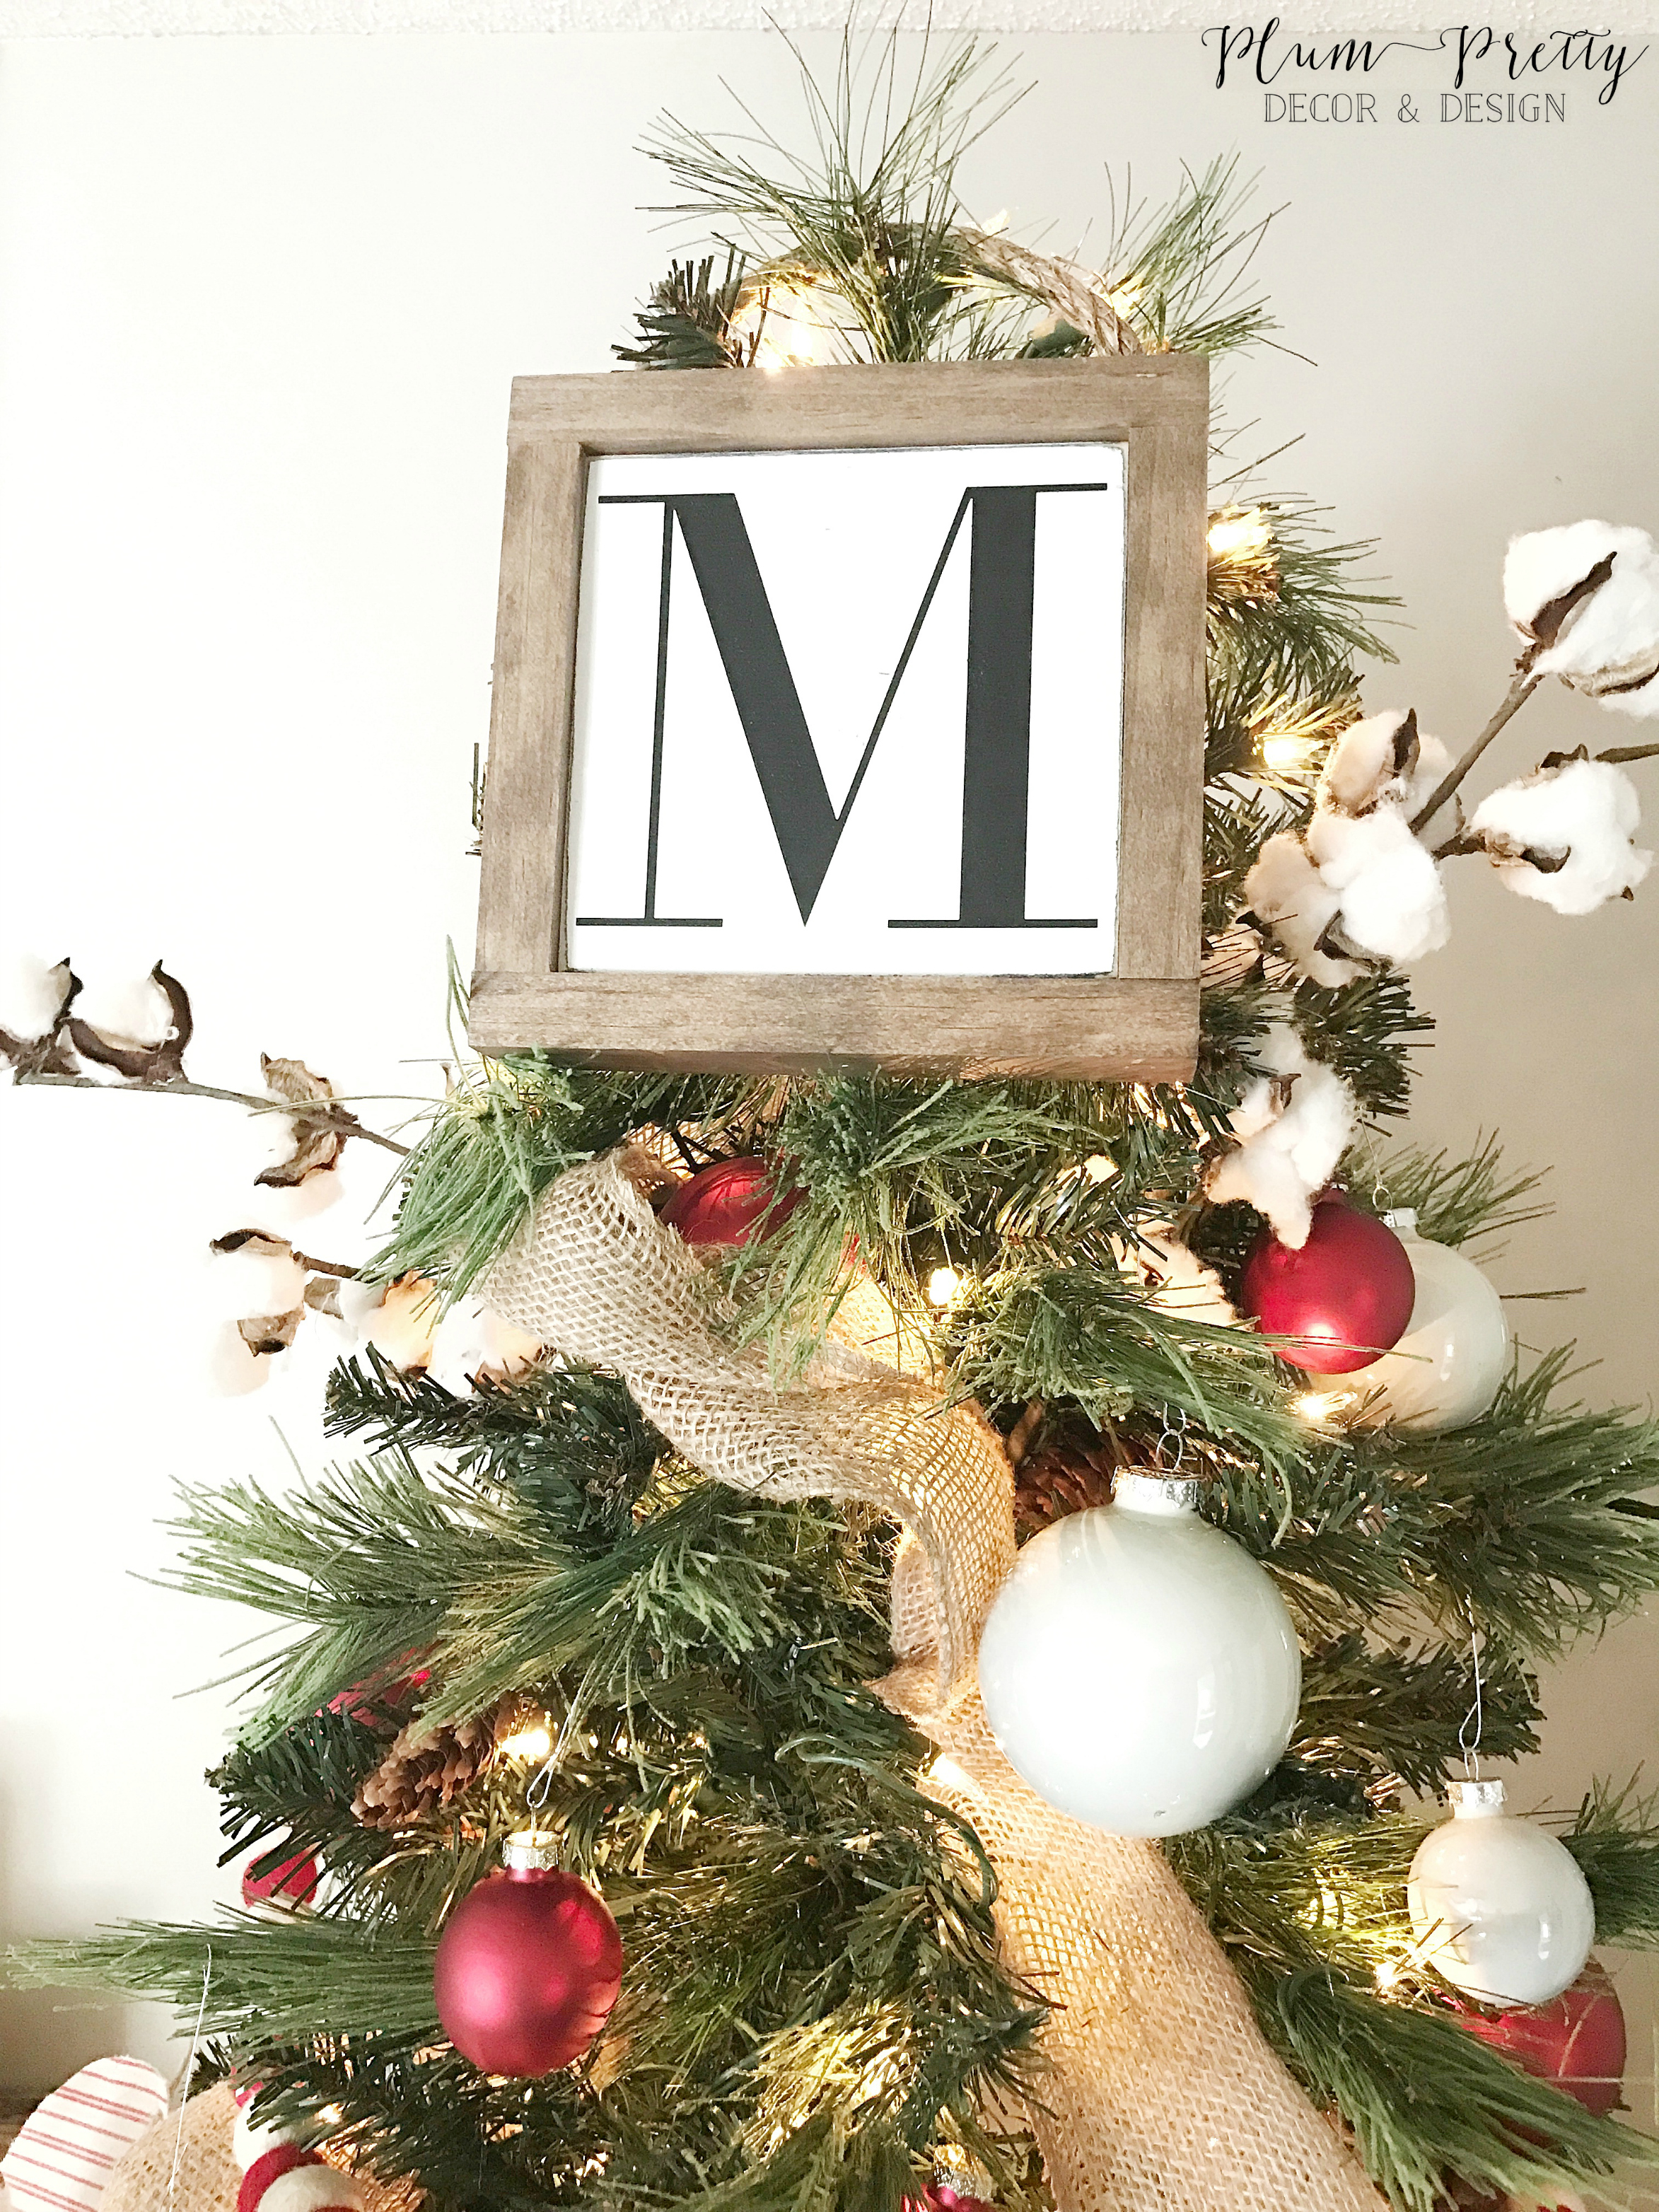 Farmhouse Christmas Bedroom Tour- Wooden Sign Tree Topper- By Kayla Miller of Plum Pretty Decor and Design